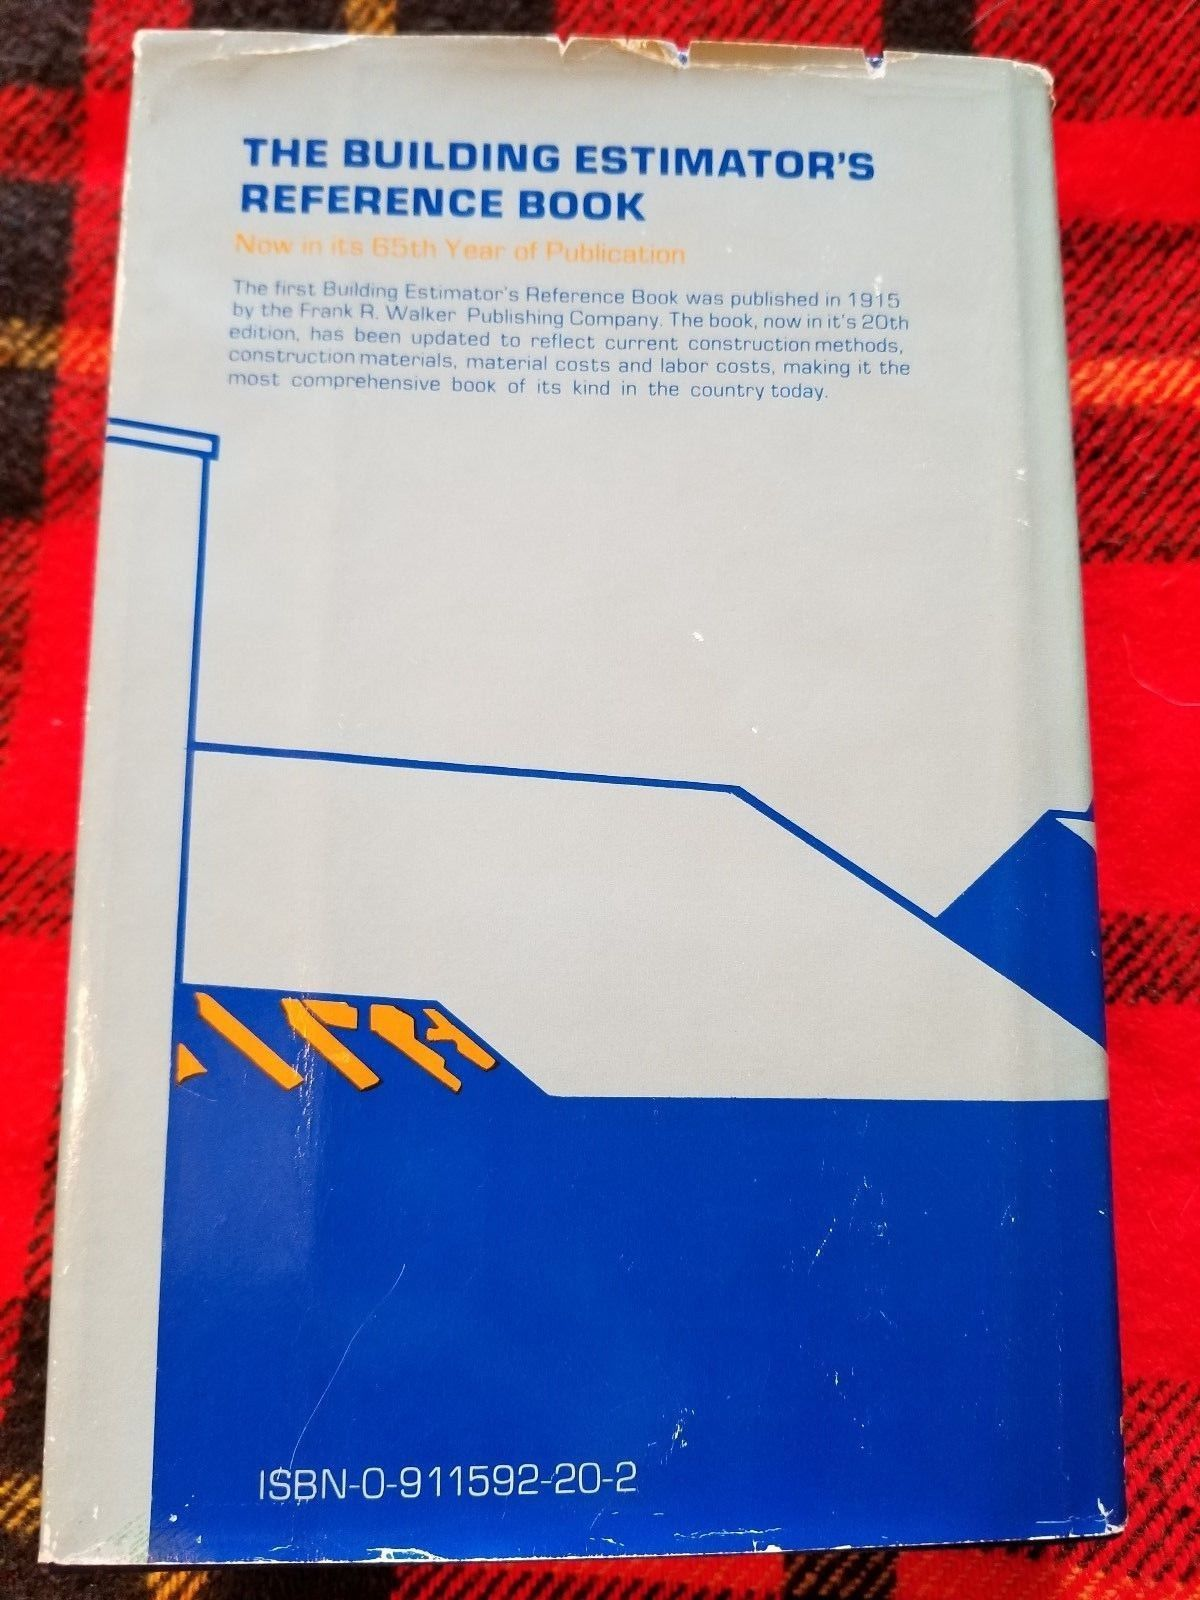 The Building Estimator's Reference Book 20th and 25 similar